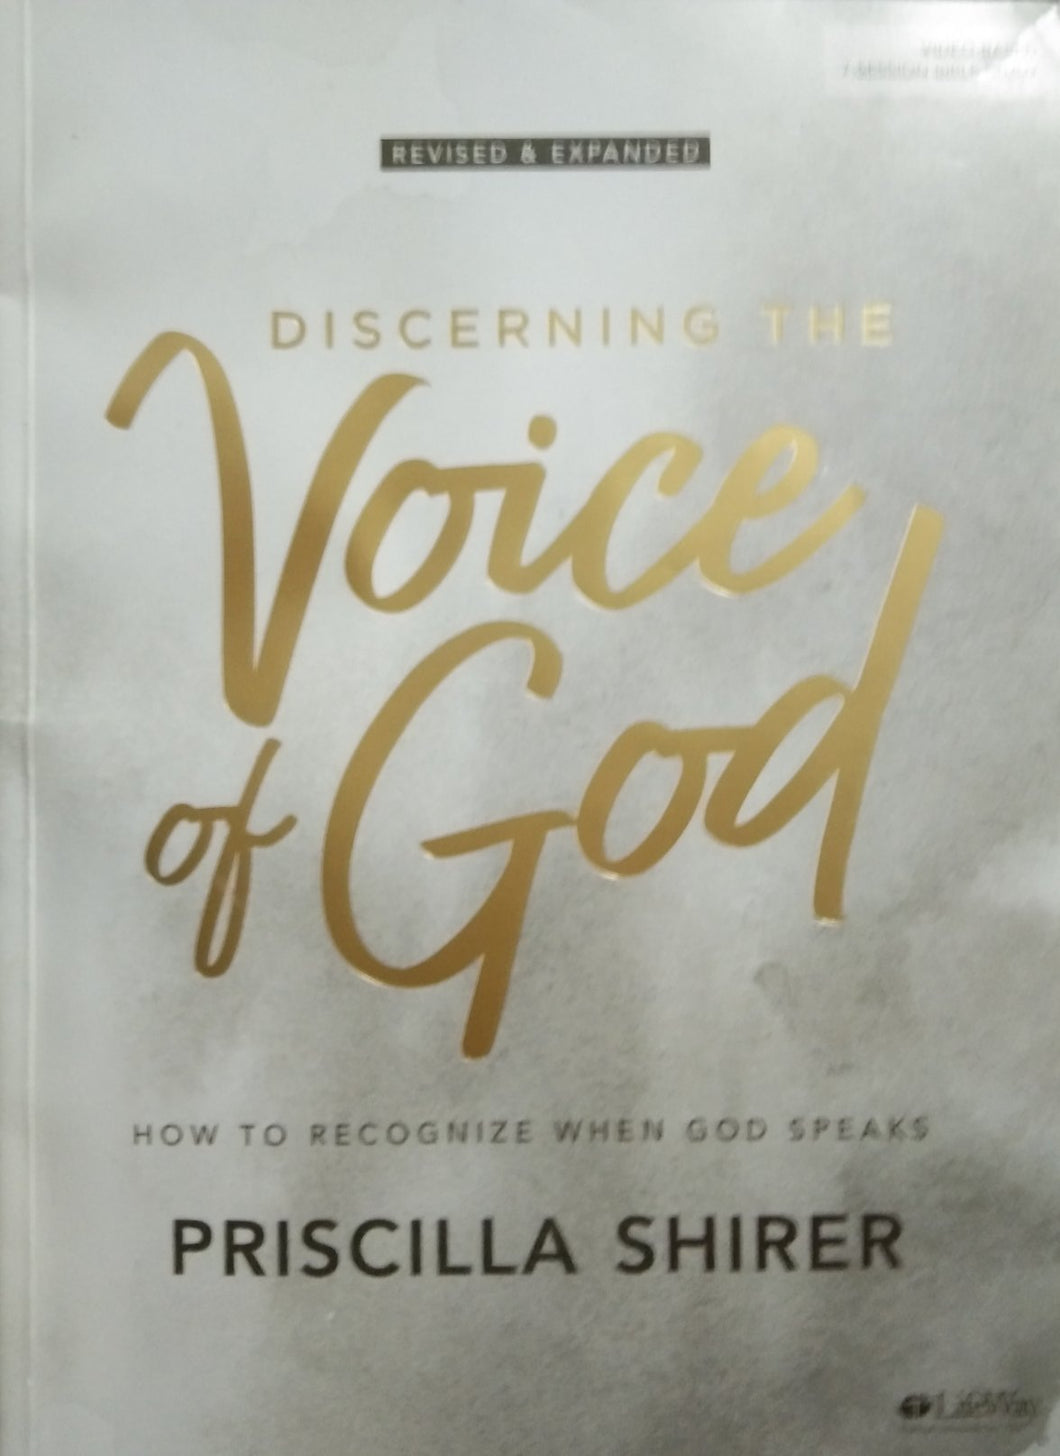 Voice of god by priscilla shirer